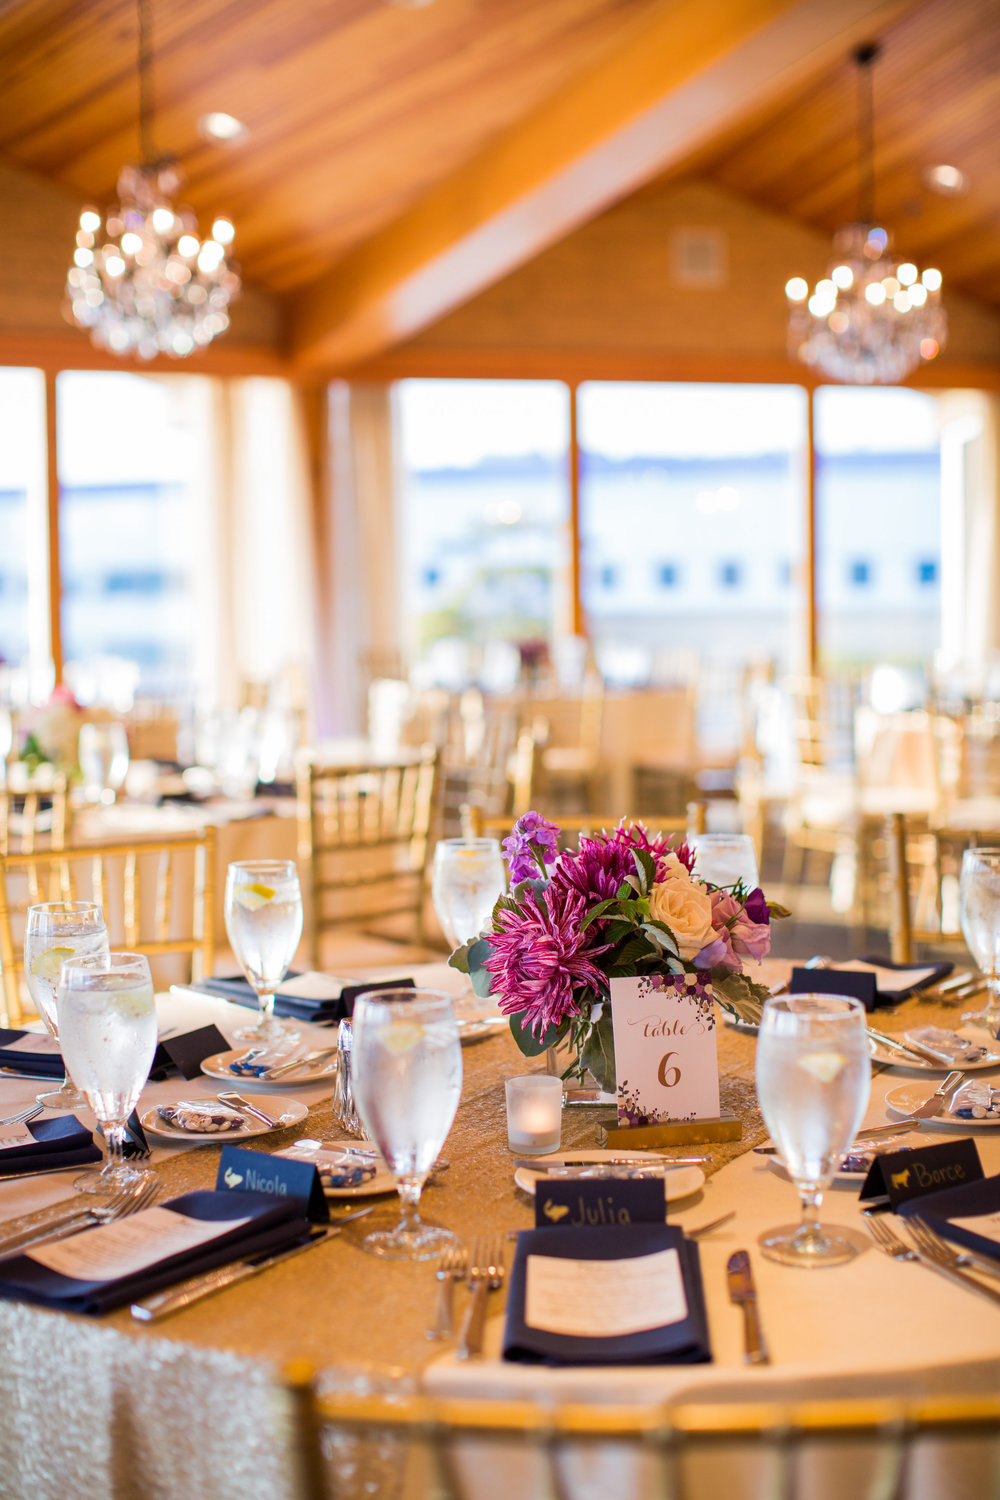 Seattle Wedding Planner, Wedding Wise | Ciccarelli Photography | Edgewater Hotel Wedding | Waterfront wedding | Navy blue and purple wedding